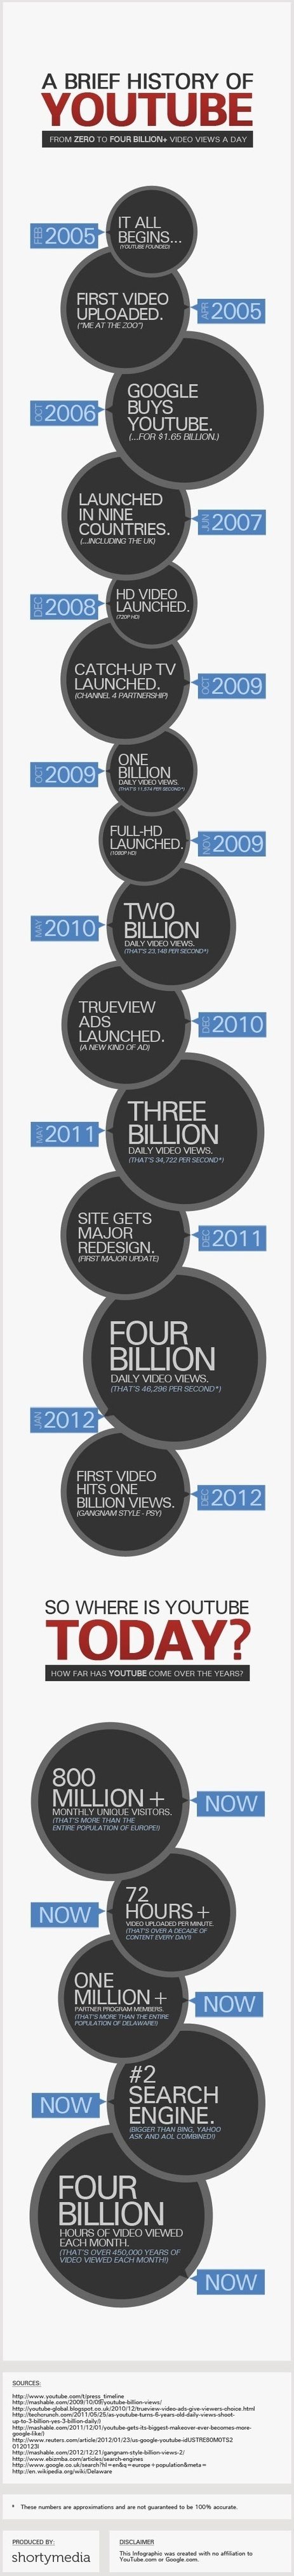 The Facts and Figures on YouTube in 2013 | All about Web | Scoop.it